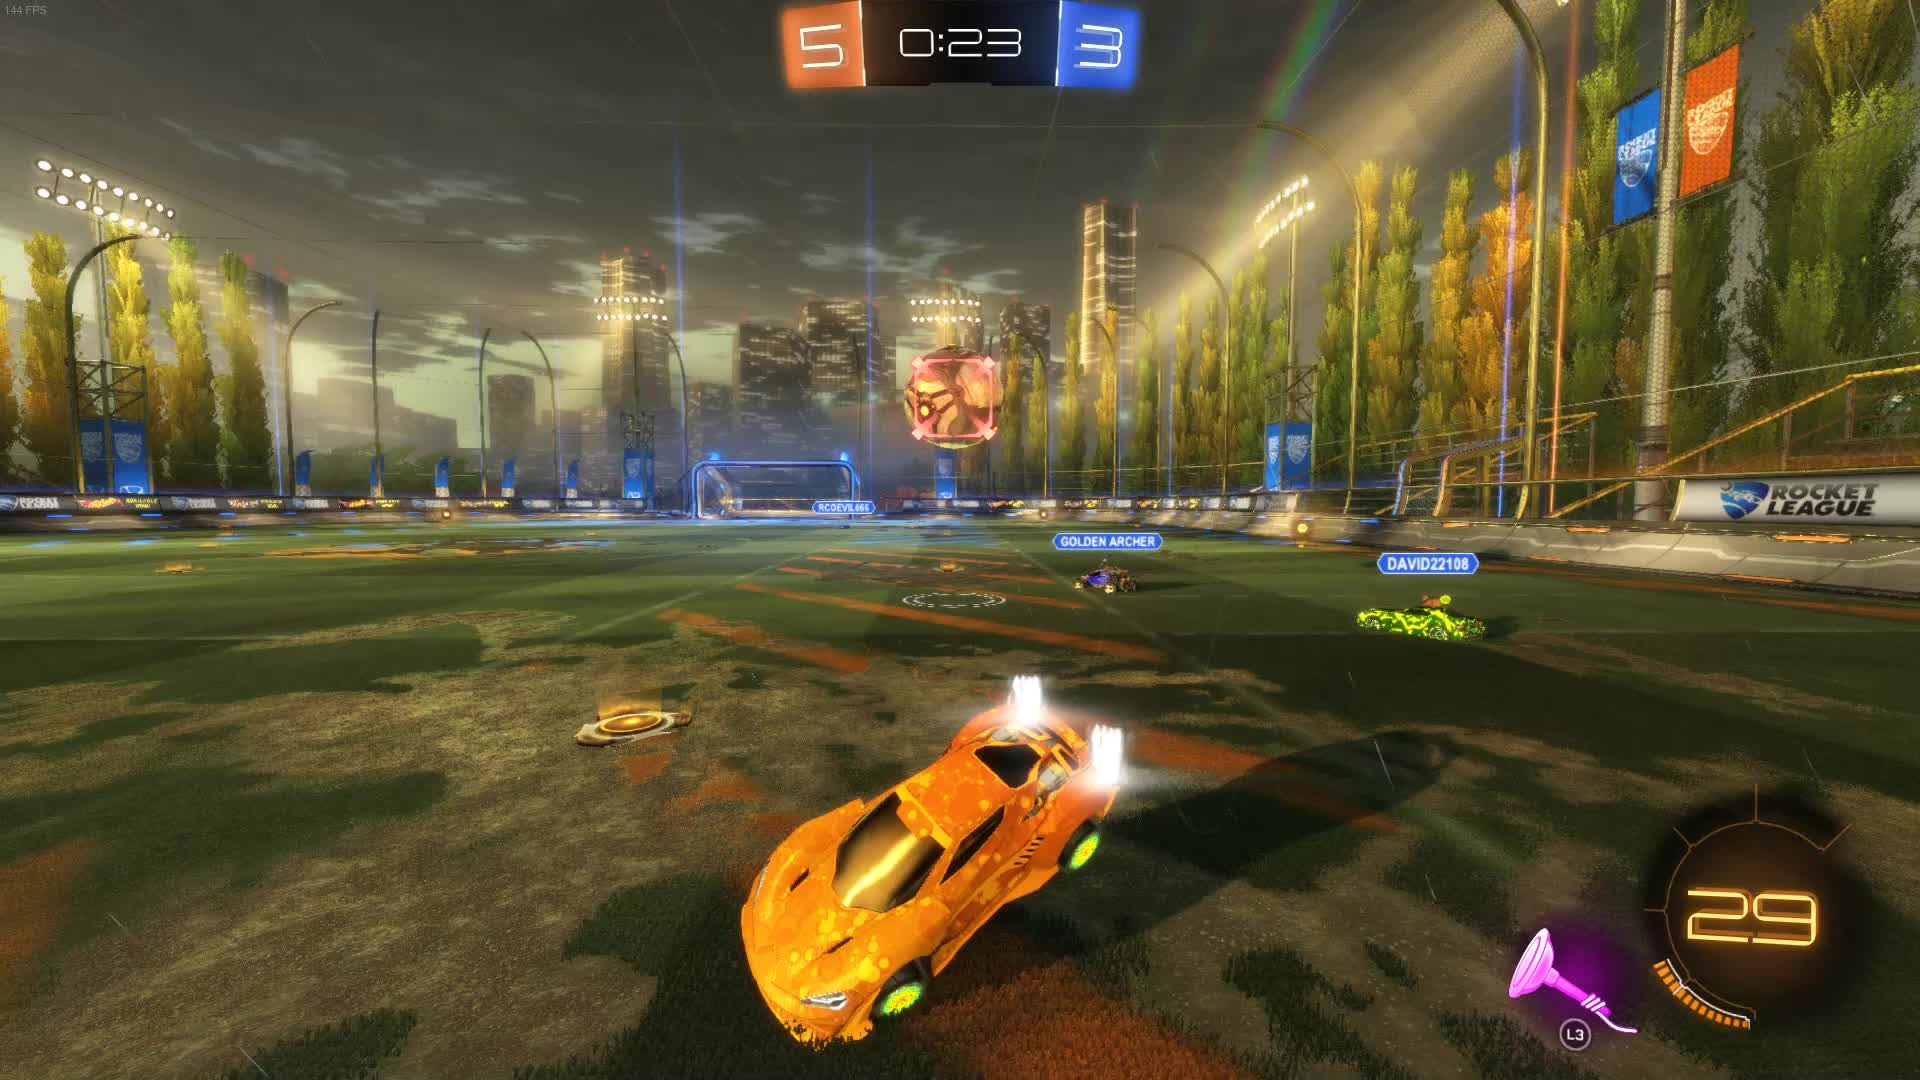 Rocket League Rumble Goals Gifs Search | Search & Share on